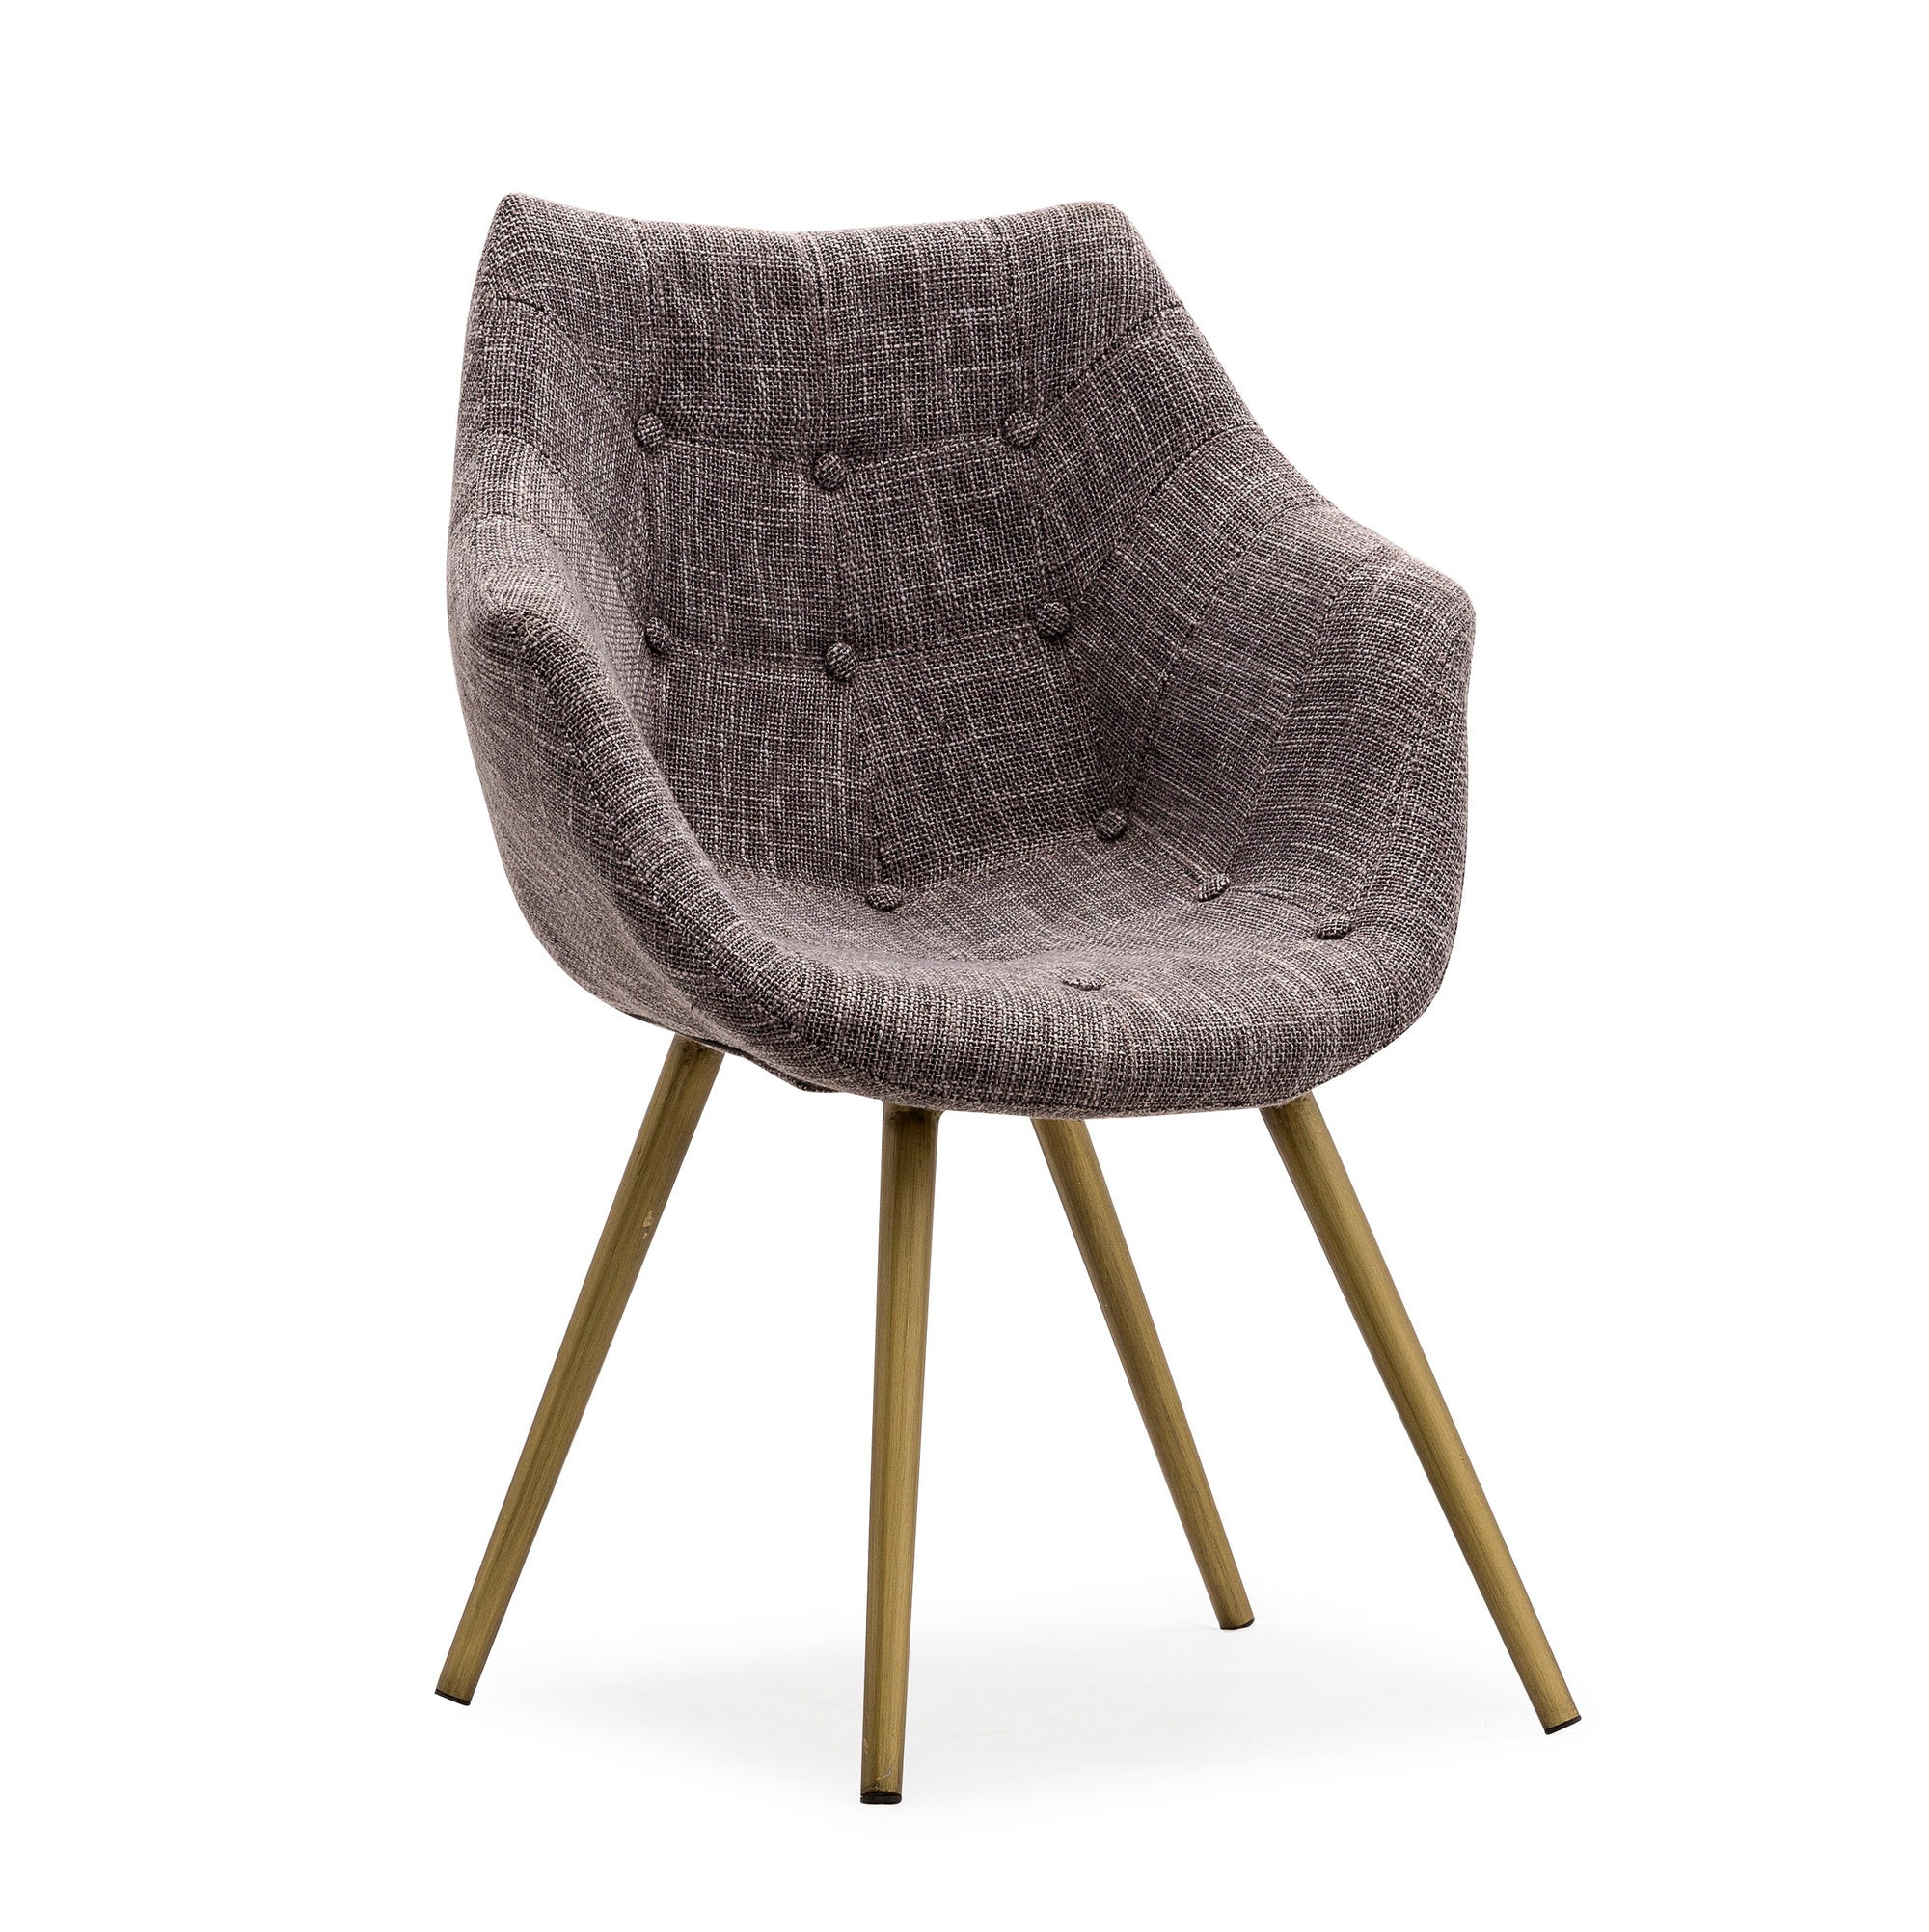 Nice A Nod To Mid Century Design, Our Sanderson Chair Is Updated To Add A